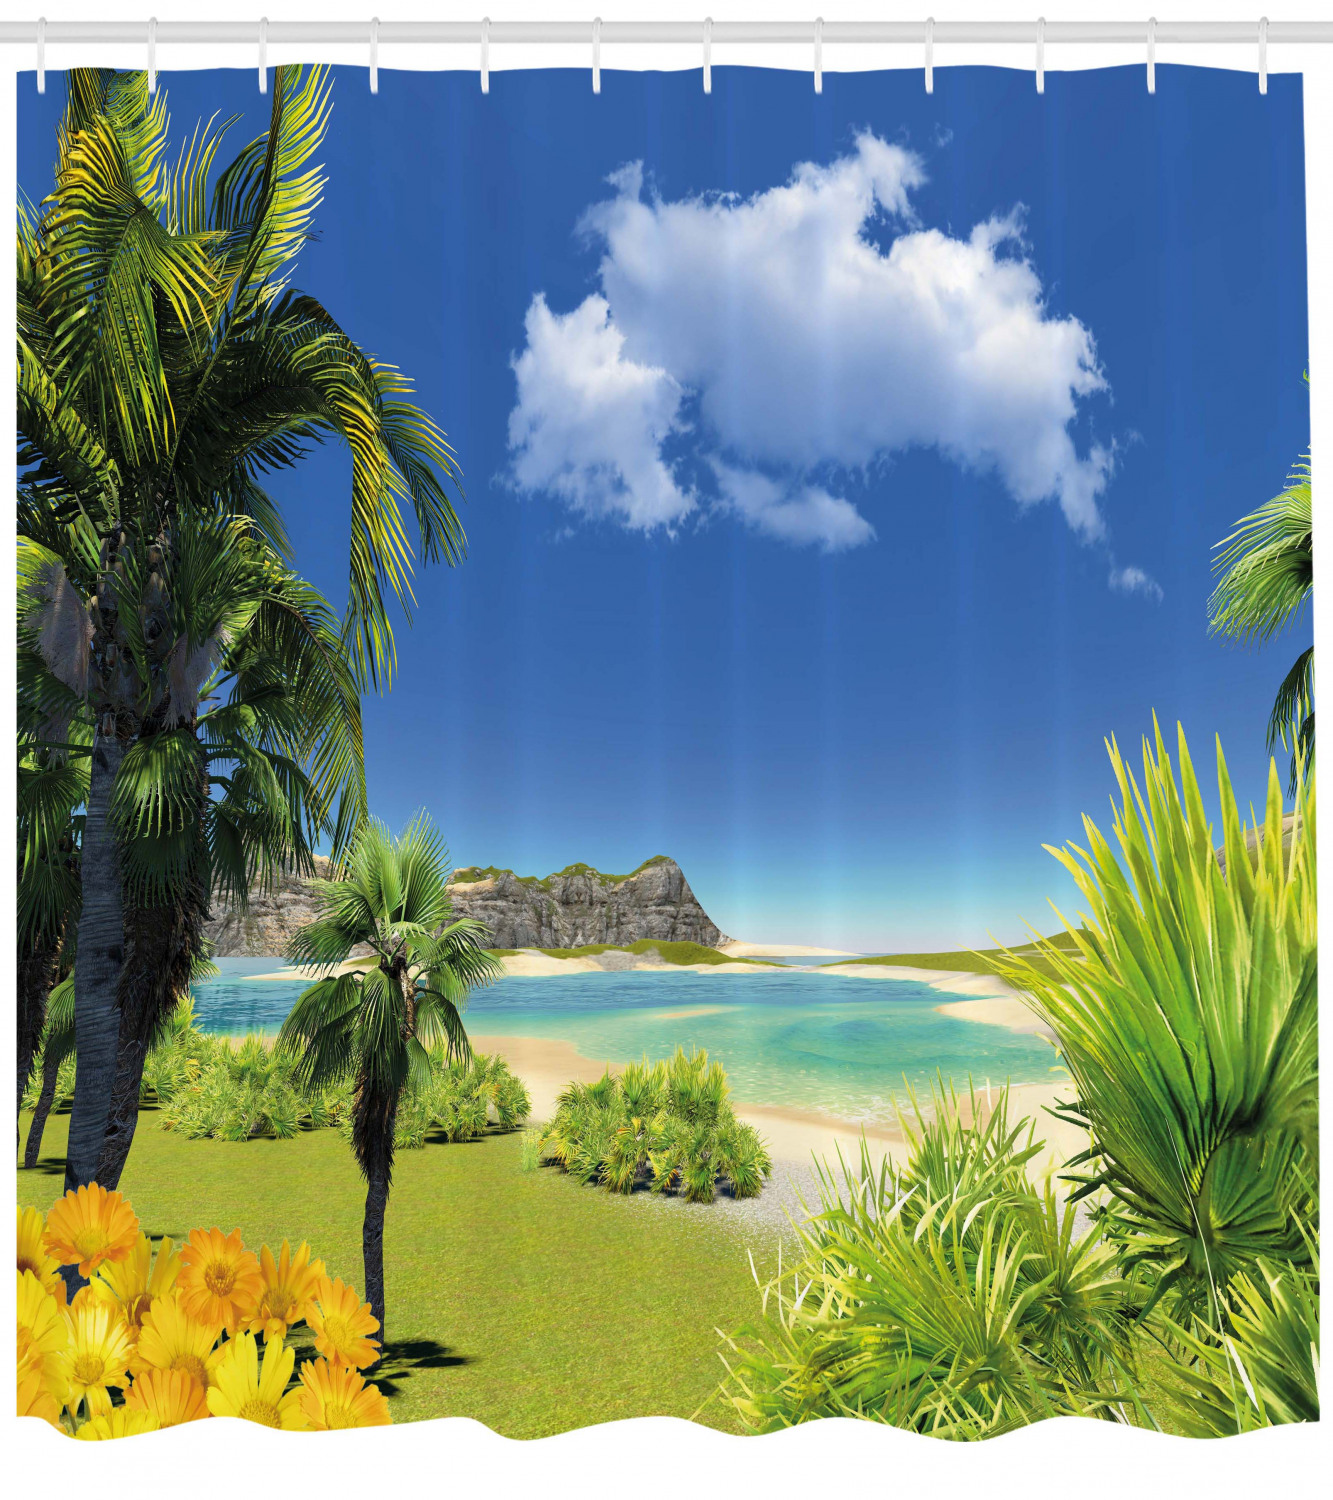 Tropical Shower Curtain Paradise Beach With Palm Trees In Exotic Island Happiness Coastal Charm Image Fabric Bathroom Set With Hooks Multicolor By Ambesonne Walmart Com Walmart Com